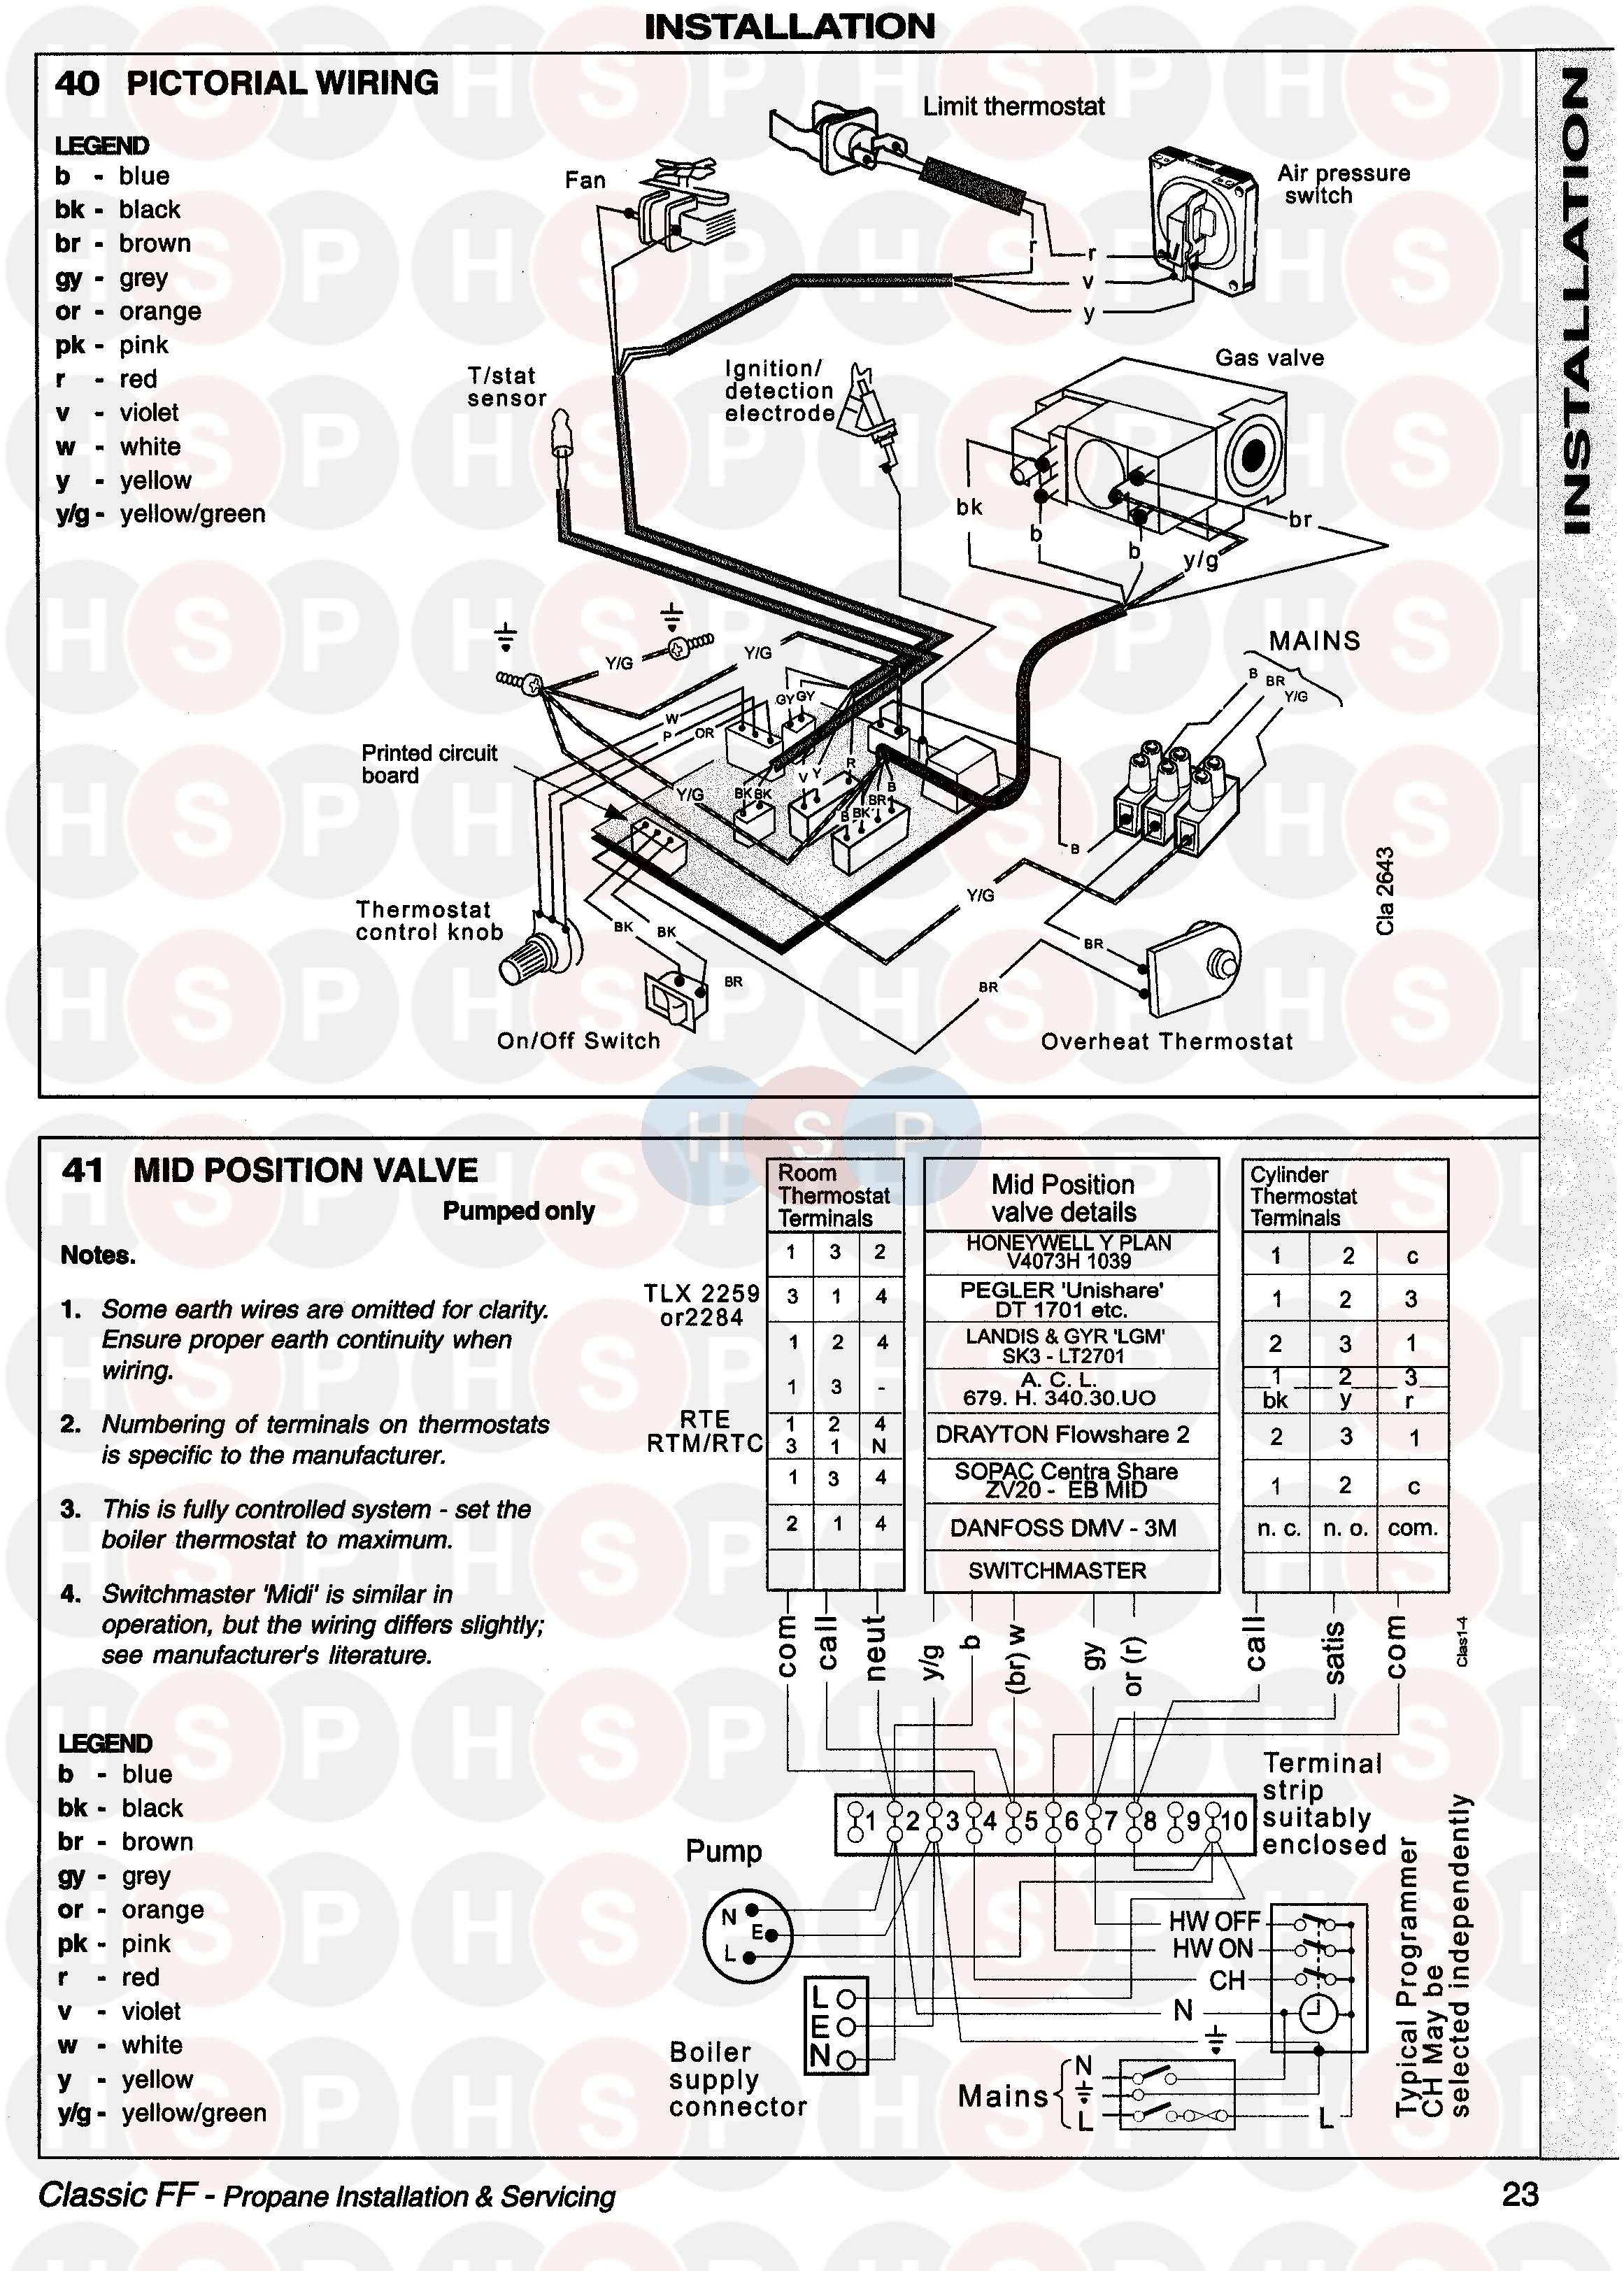 Ideal boilers classic ff250 manuals.